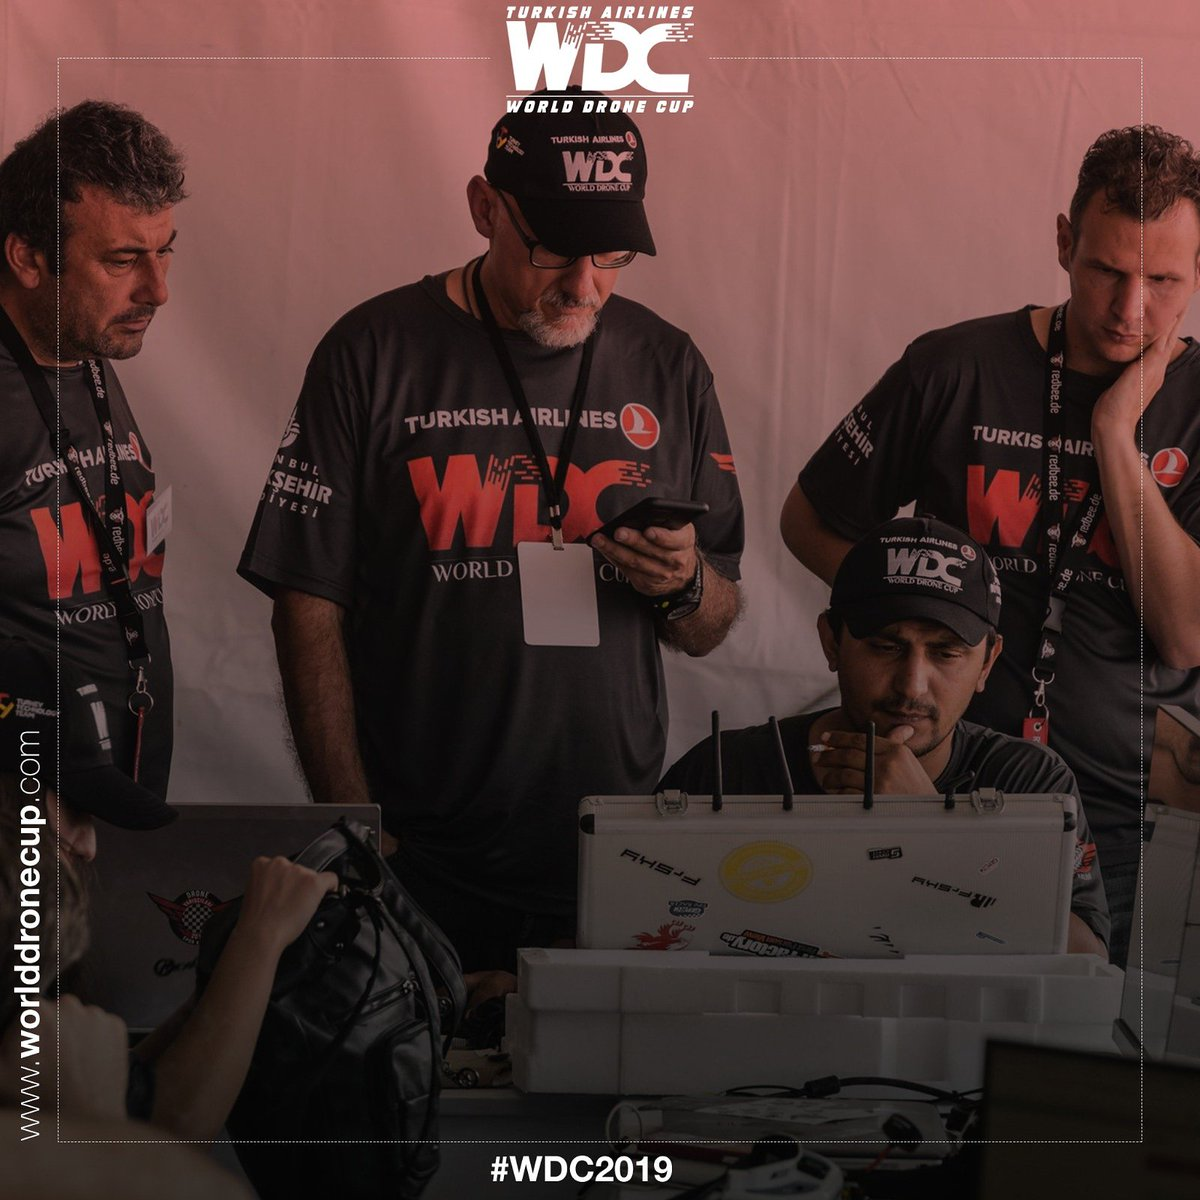 La Drone Racers Sports Club Association (DYD) conferma l'edizione del WDC19